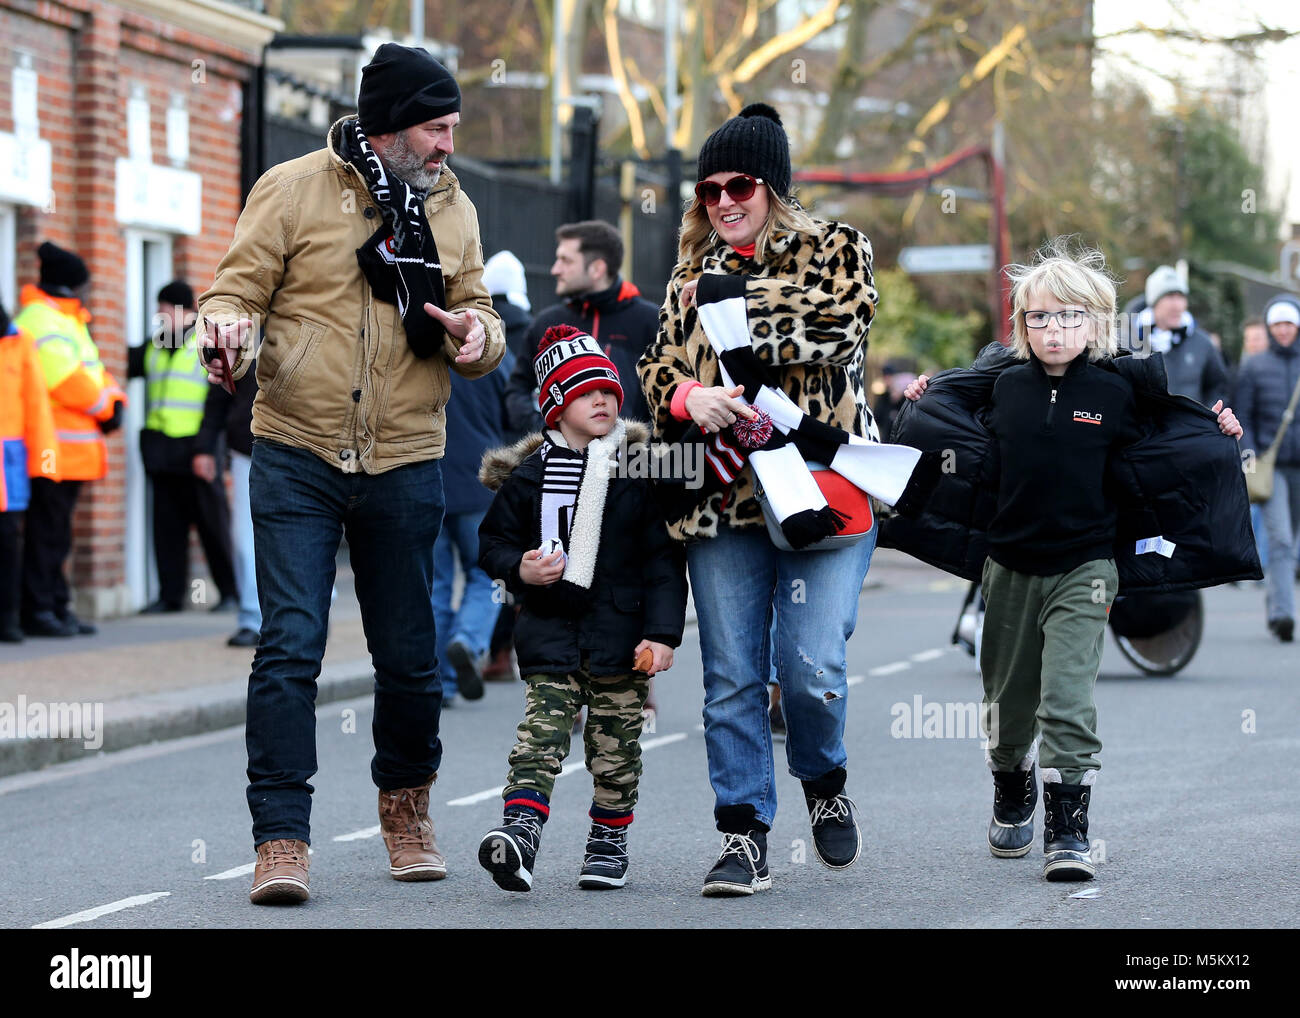 Fulham fans make their way to the ground before the Championship match at Craven Cottage, London. - Stock Image